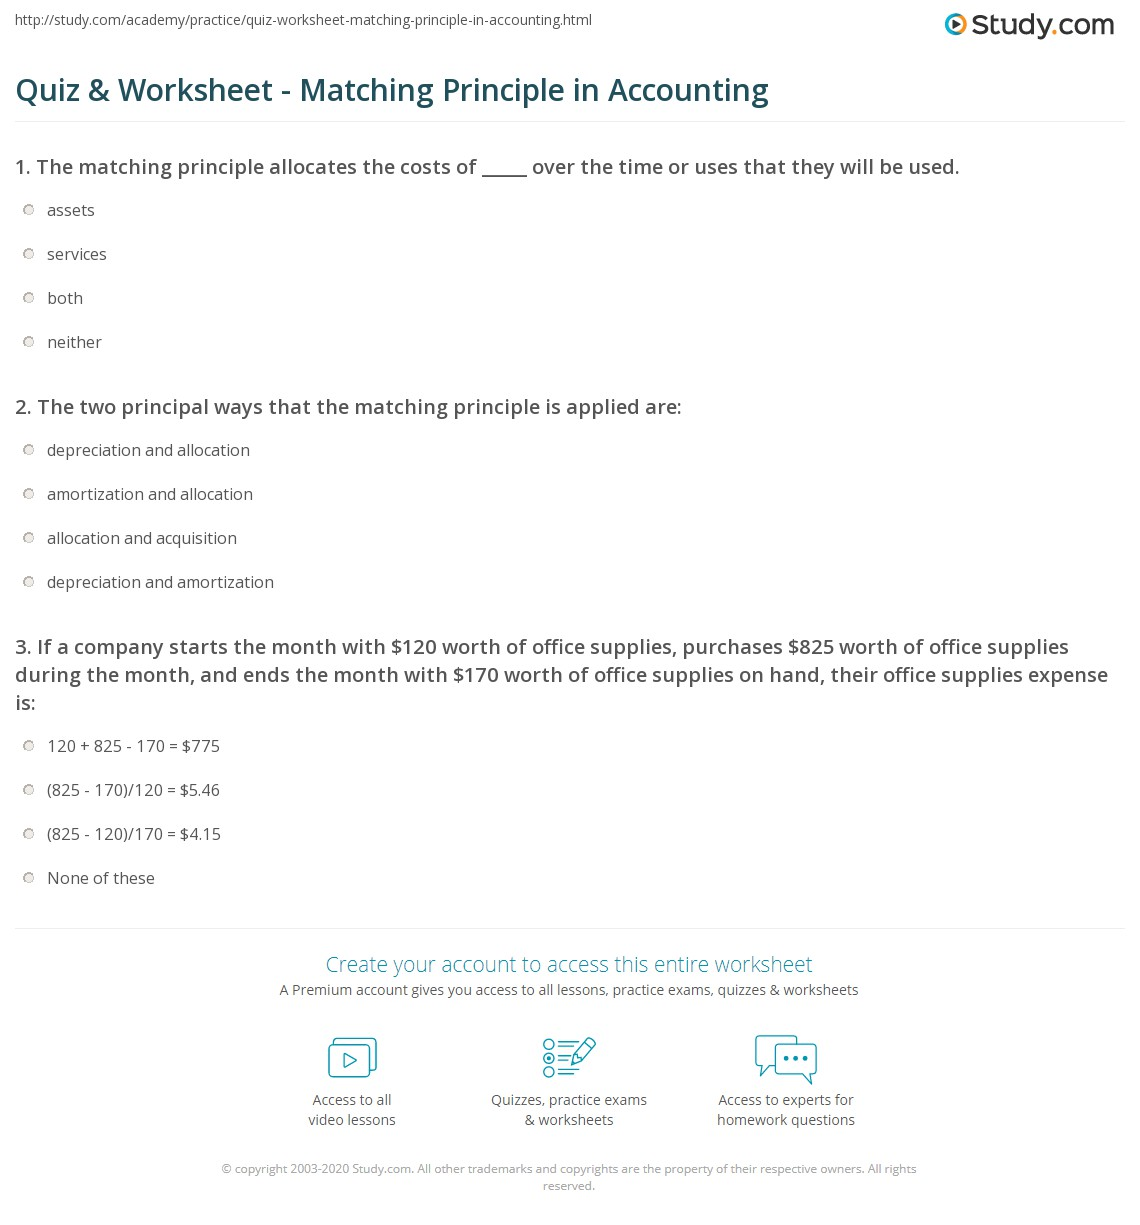 Quiz & Worksheet - Matching Principle in Accounting | Study.com